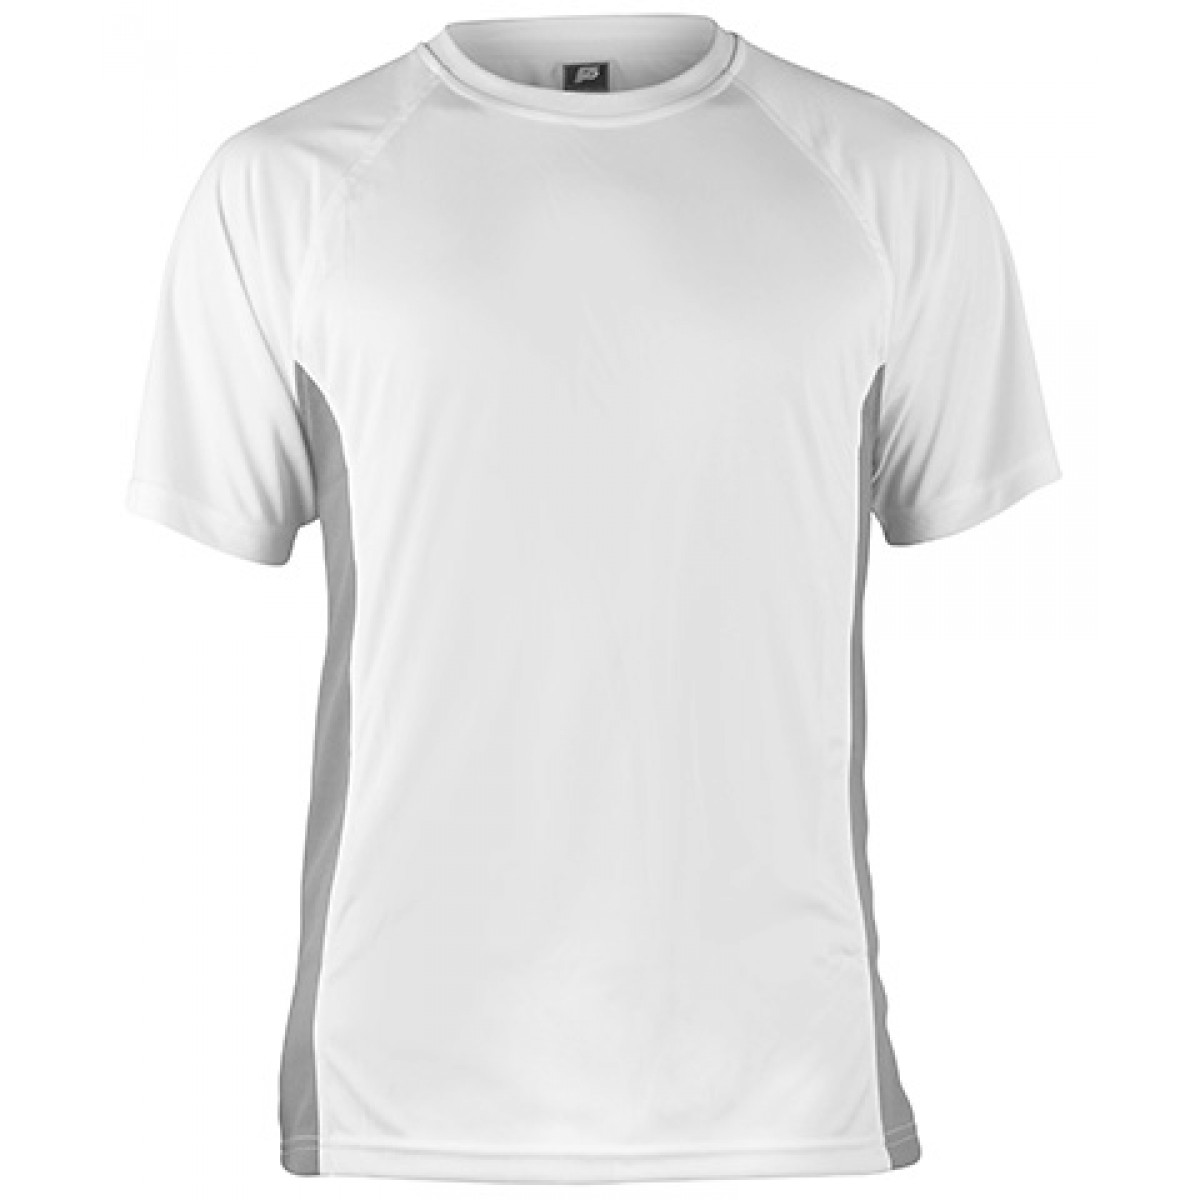 Short Sleeves Performance With Side Insert-White/Gray-S